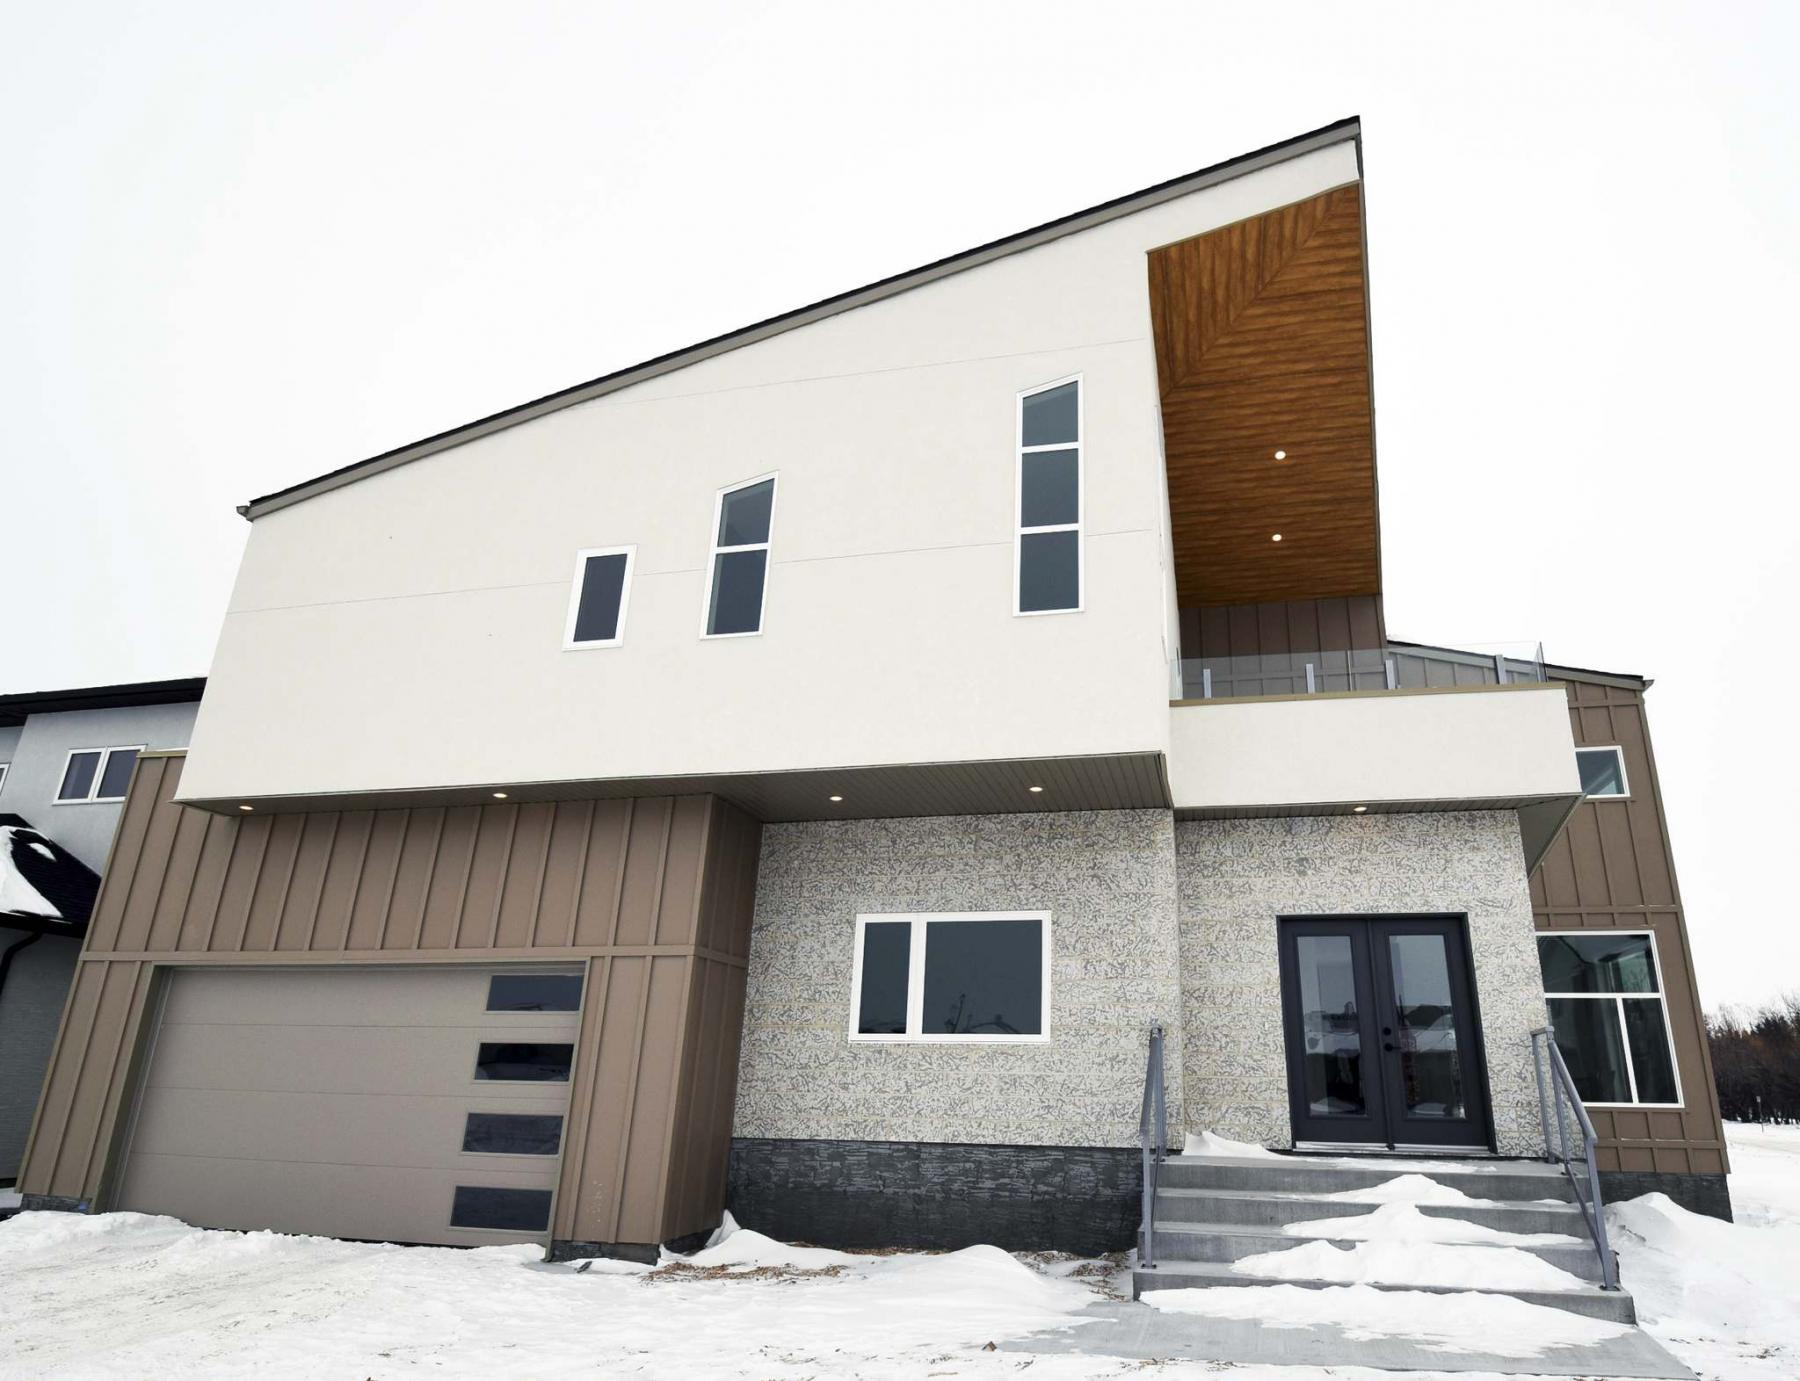 <p>Todd Lewys / Winnipeg Free Press</p><p>The home's eye-catching exterior is a preview to its creative design.</p>